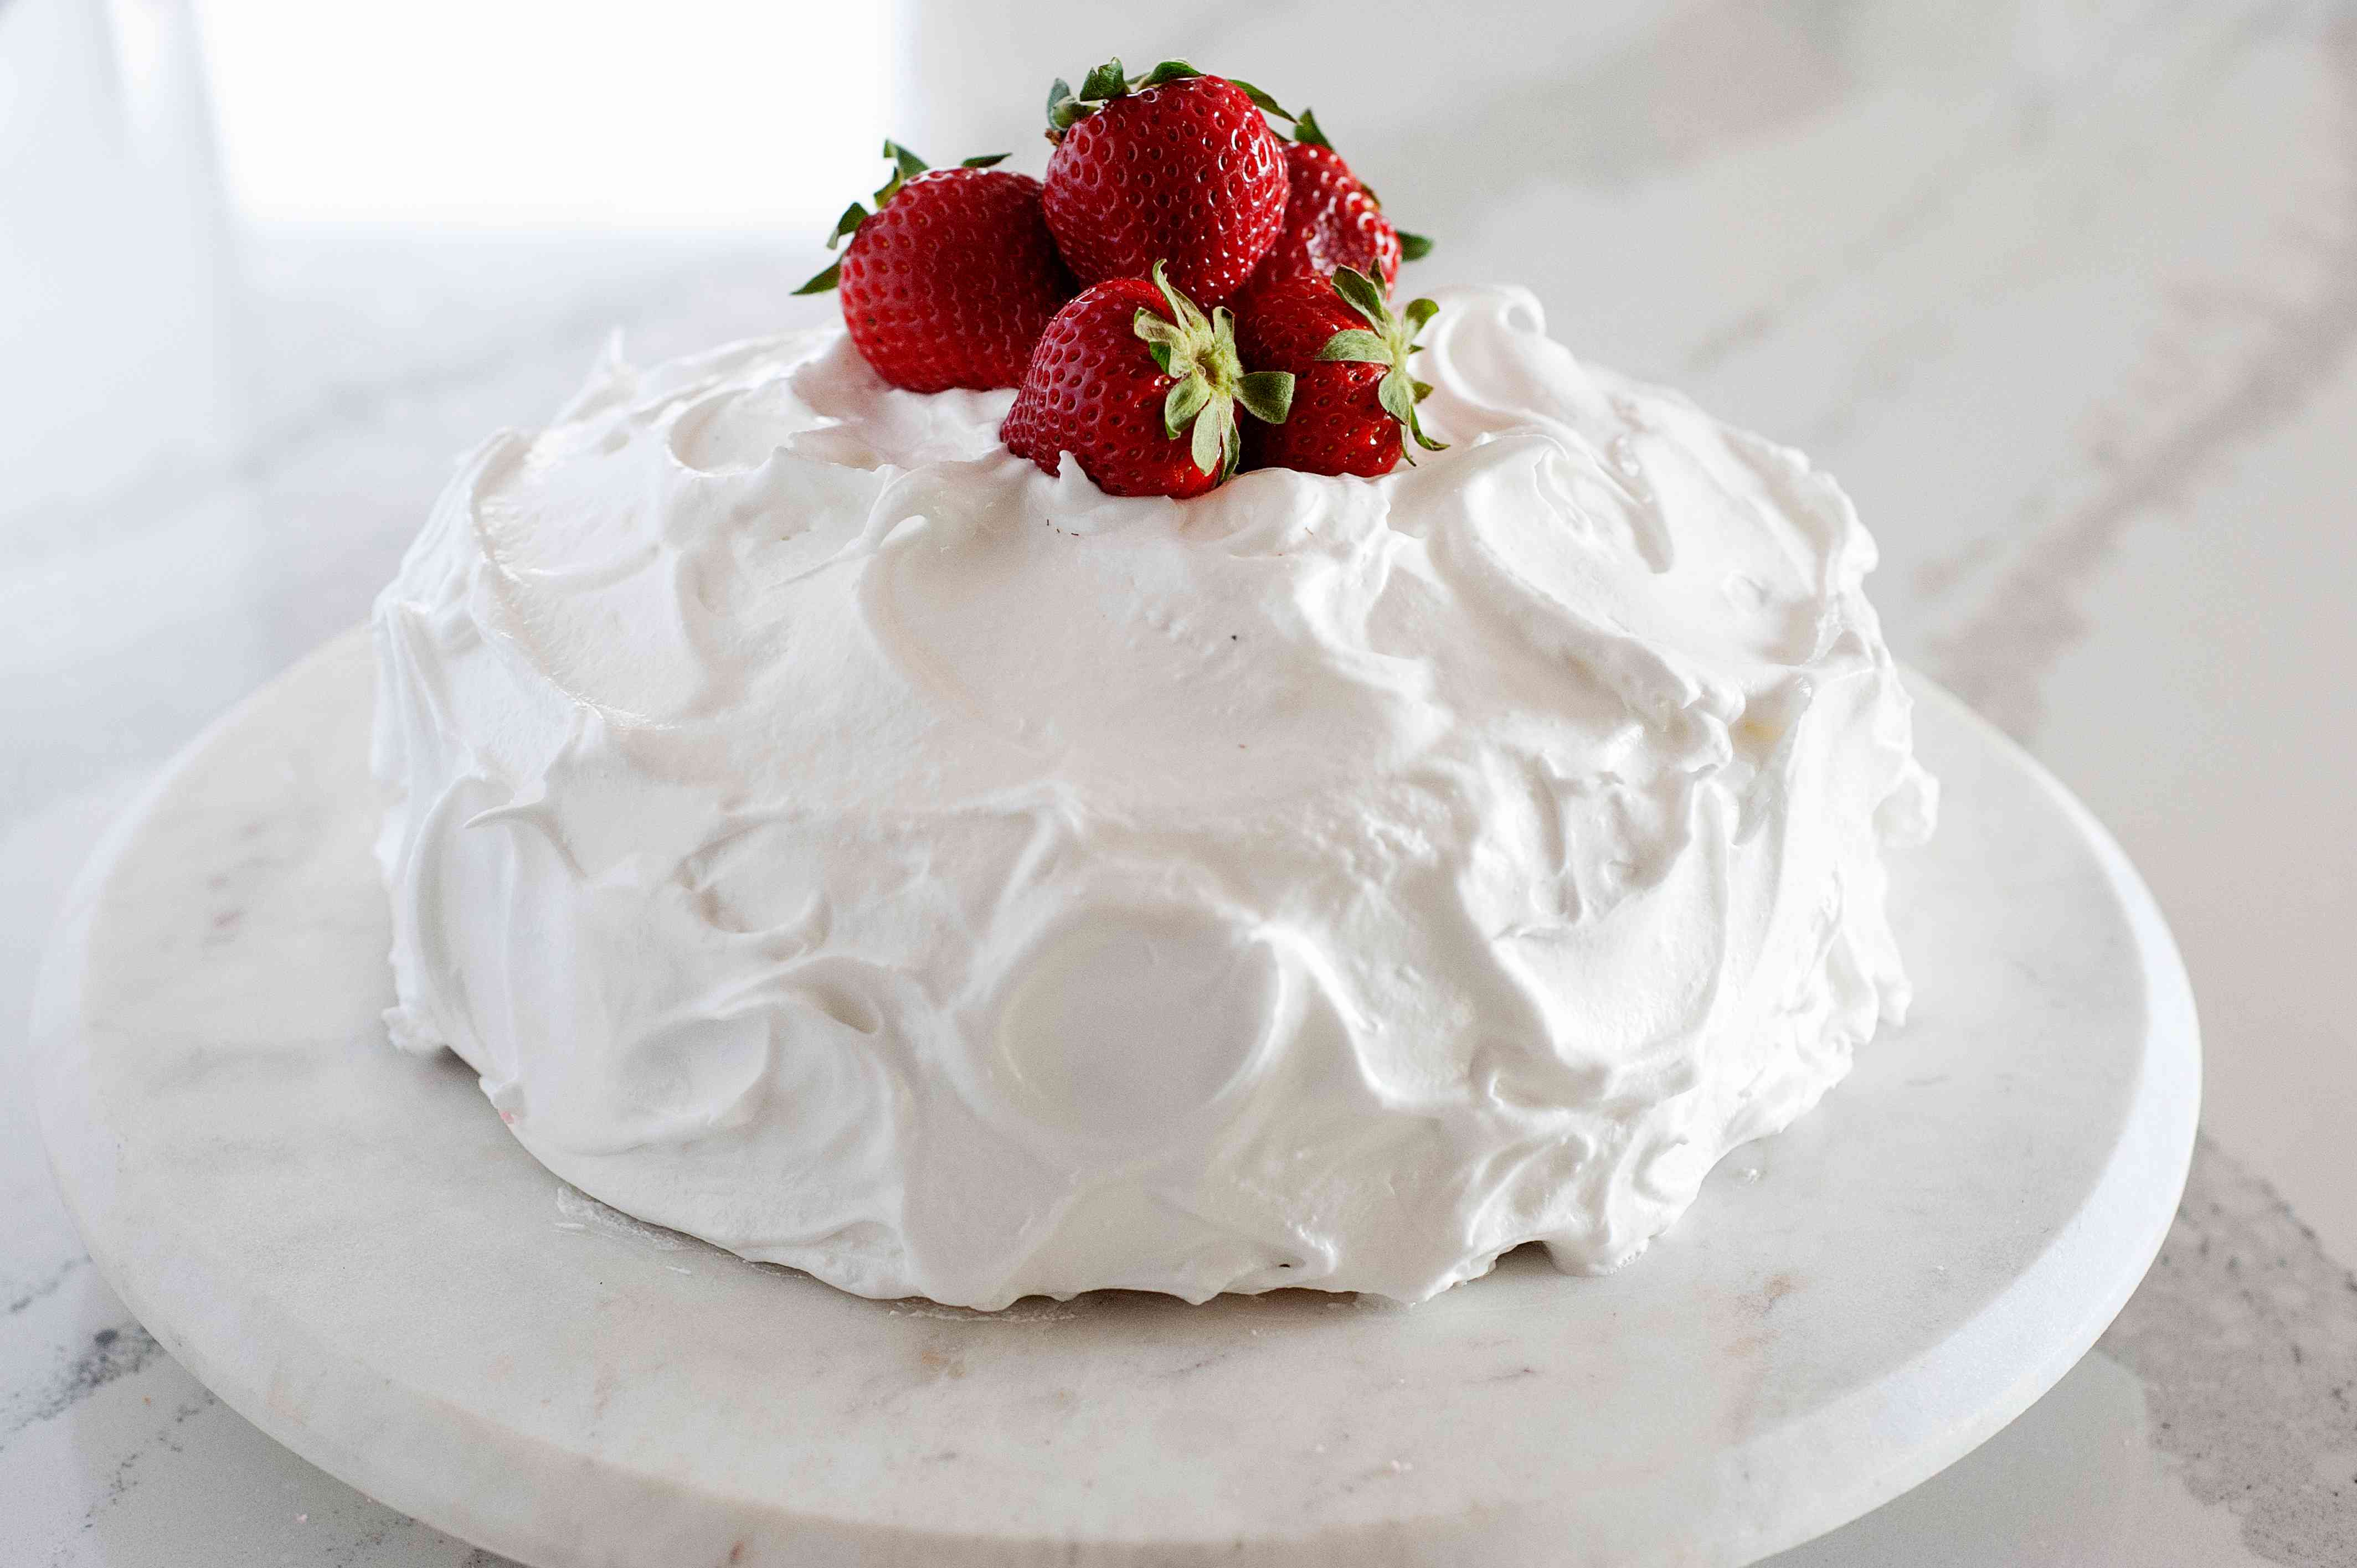 Side view of Homemade Strawberry Layer Cake on a cake stand and topped with strawberries.